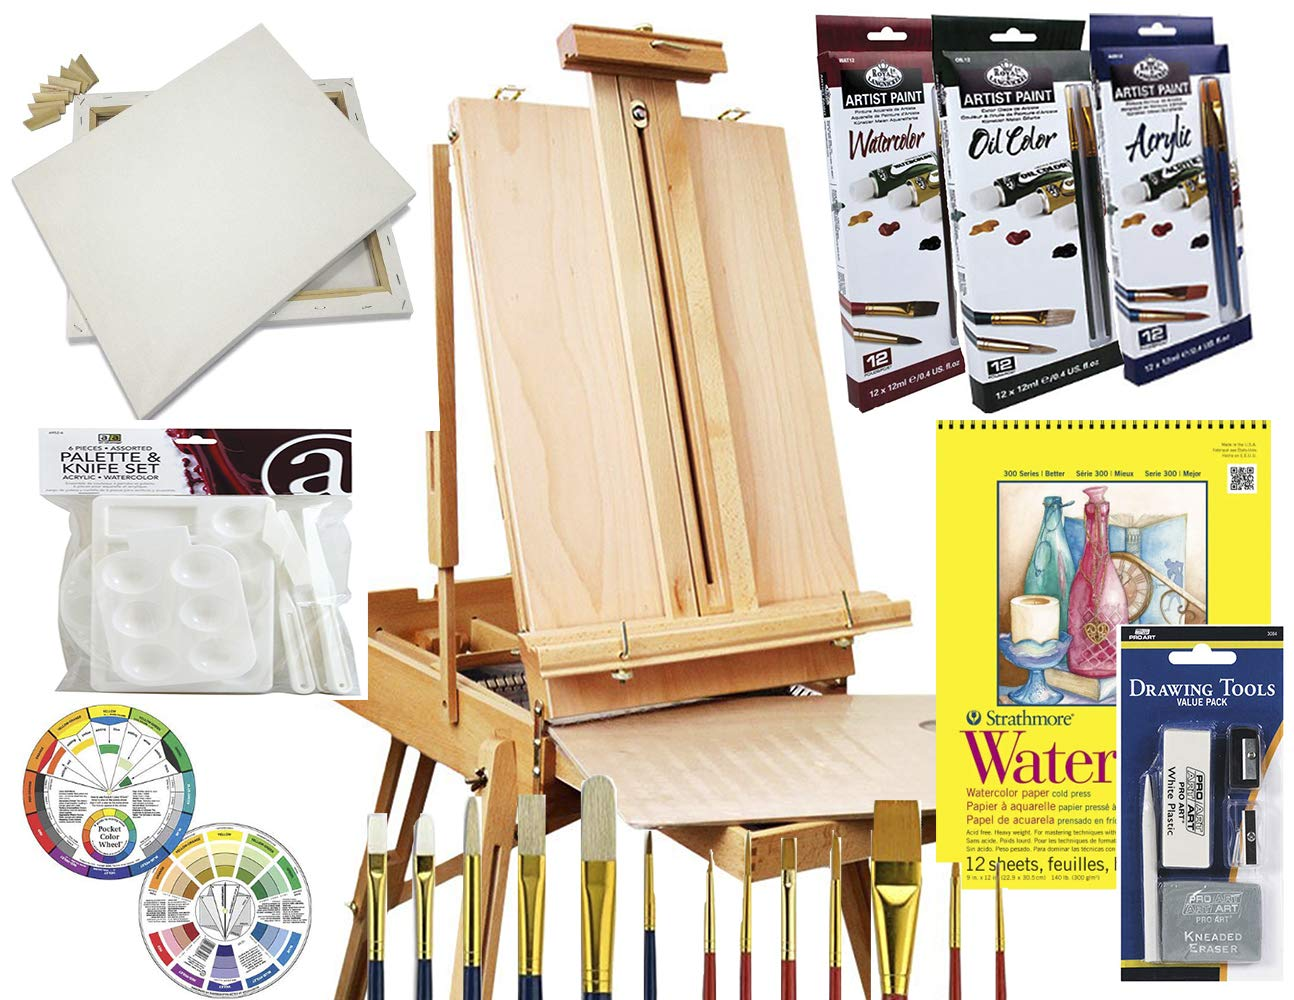 Art Set with HARDWOOD French Easel, Paints, Stretched Canvases, Brush Sets, Drawing Supplies and More by French Easels